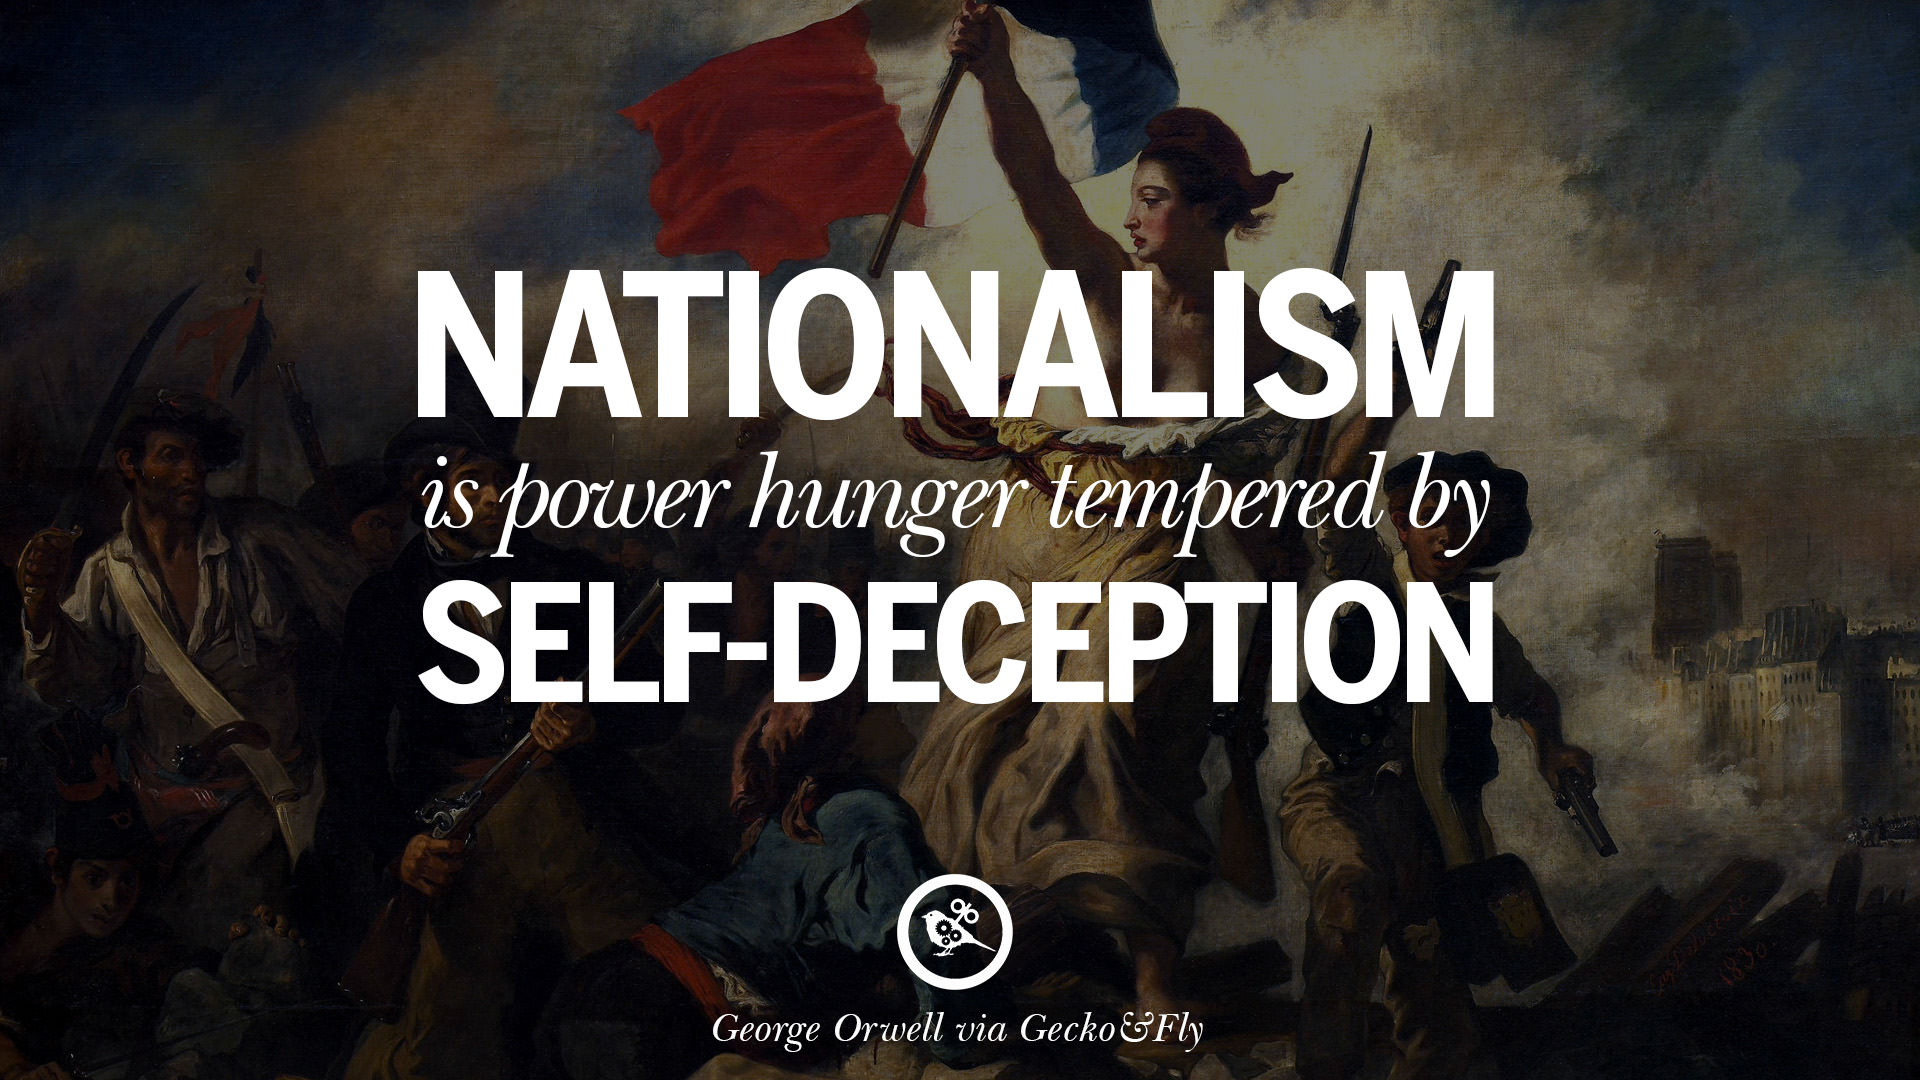 what does orwell mean by negative nationalism